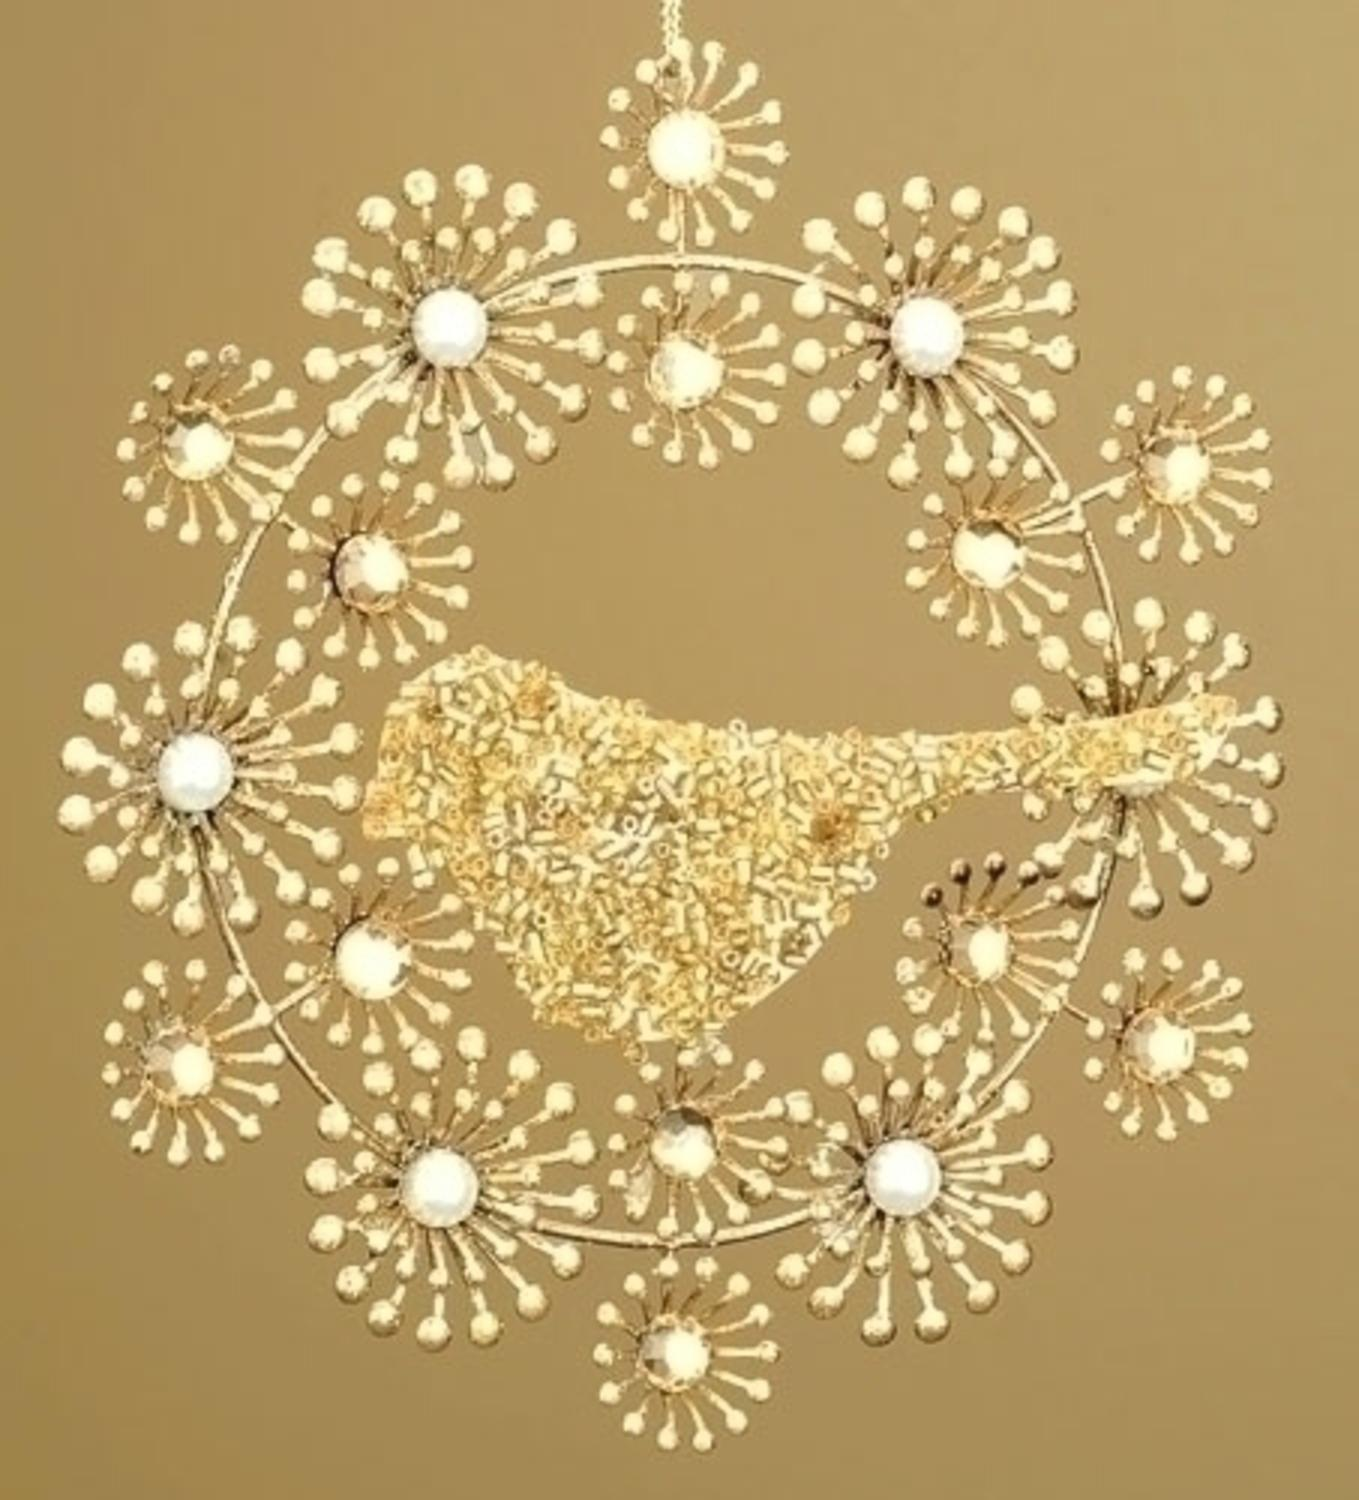 Winter's Beauty Beaded Gold Wreath with Bird Christmas Ornament